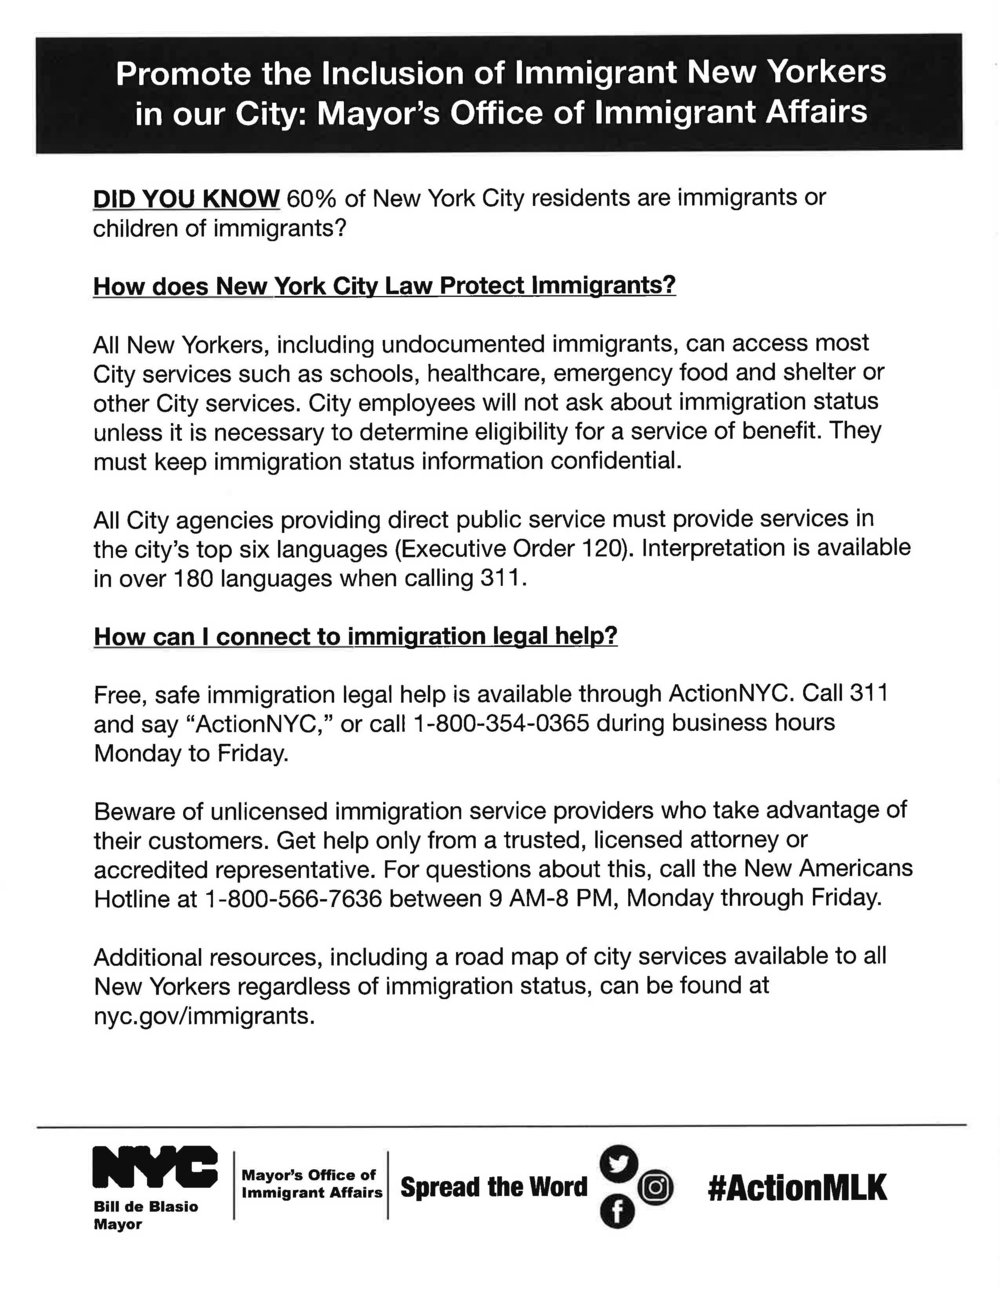 Promote the Inclusion of Immigrant New Yorkers in our City: Major's Office of Immigrant Affairs